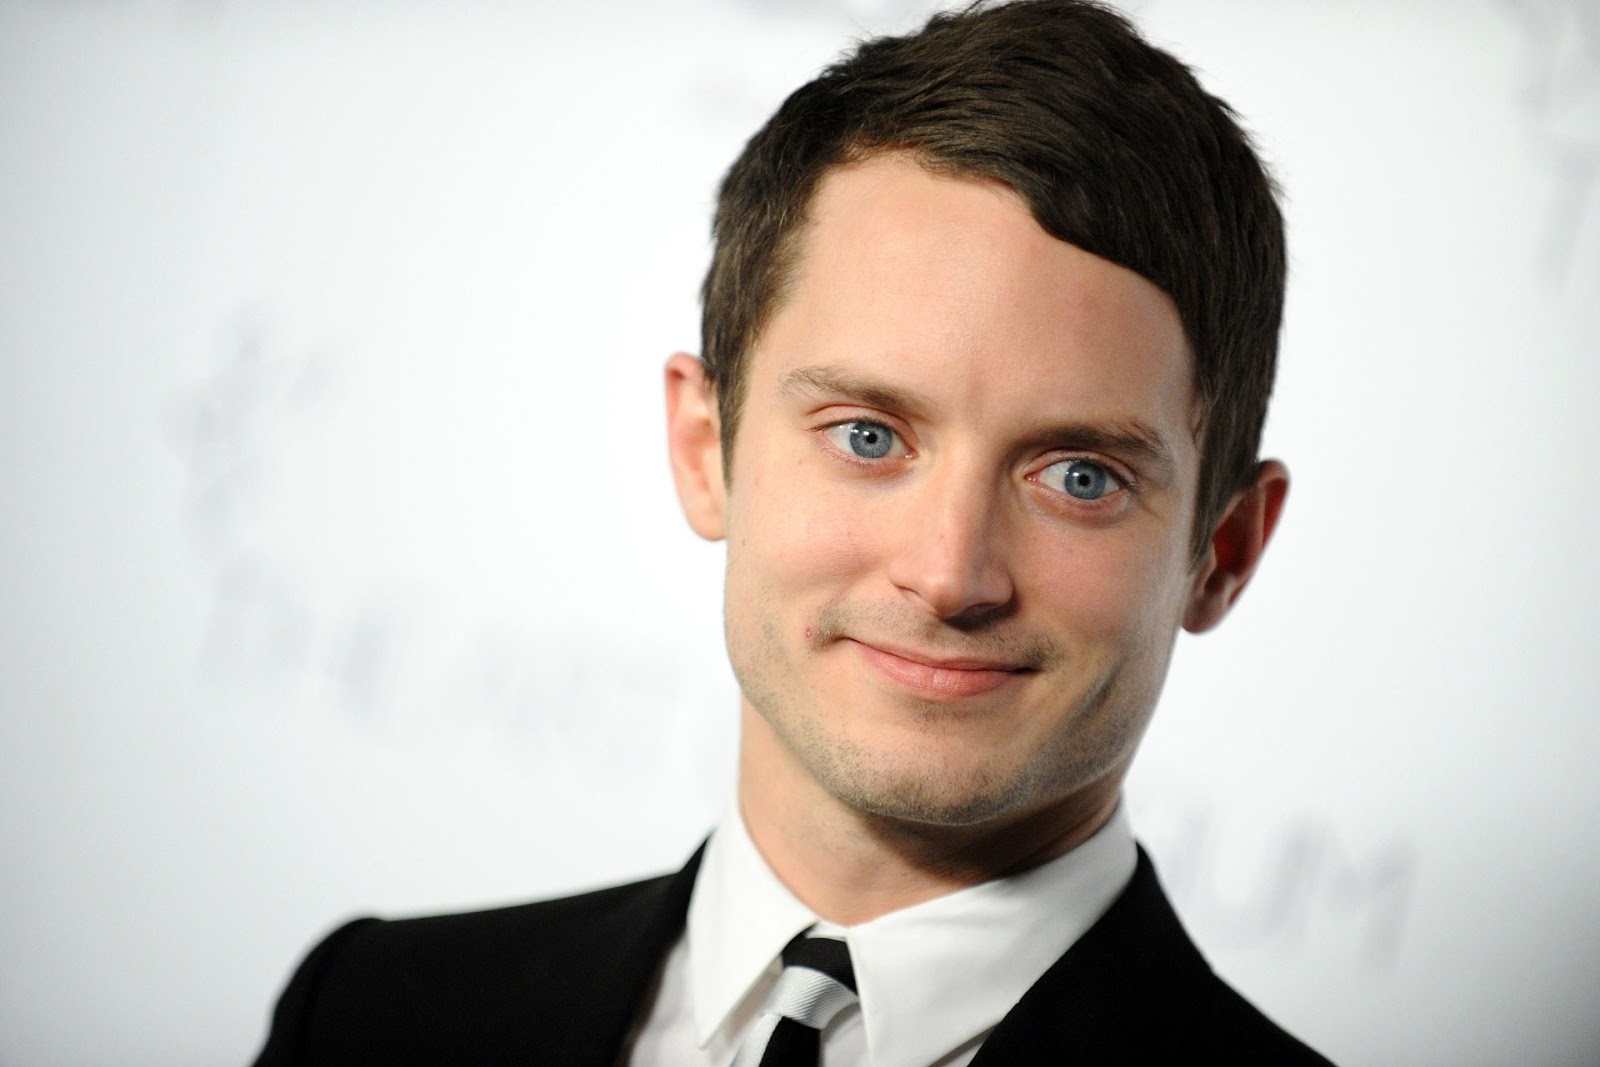 Dirk Gently - Elijah Wood to Star in BBC America Drama